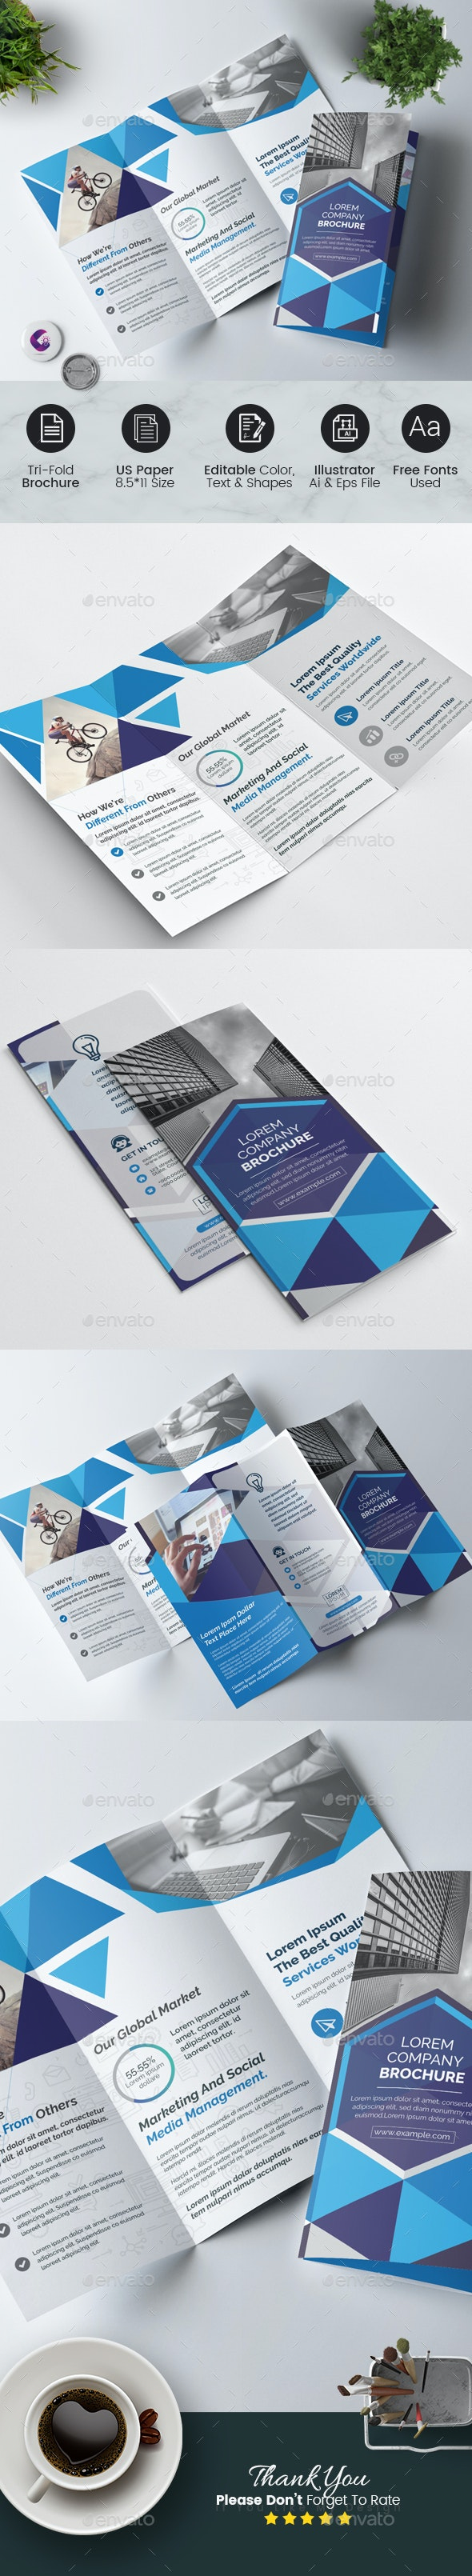 Geometric Tri-Fold Brochure - Corporate Brochures